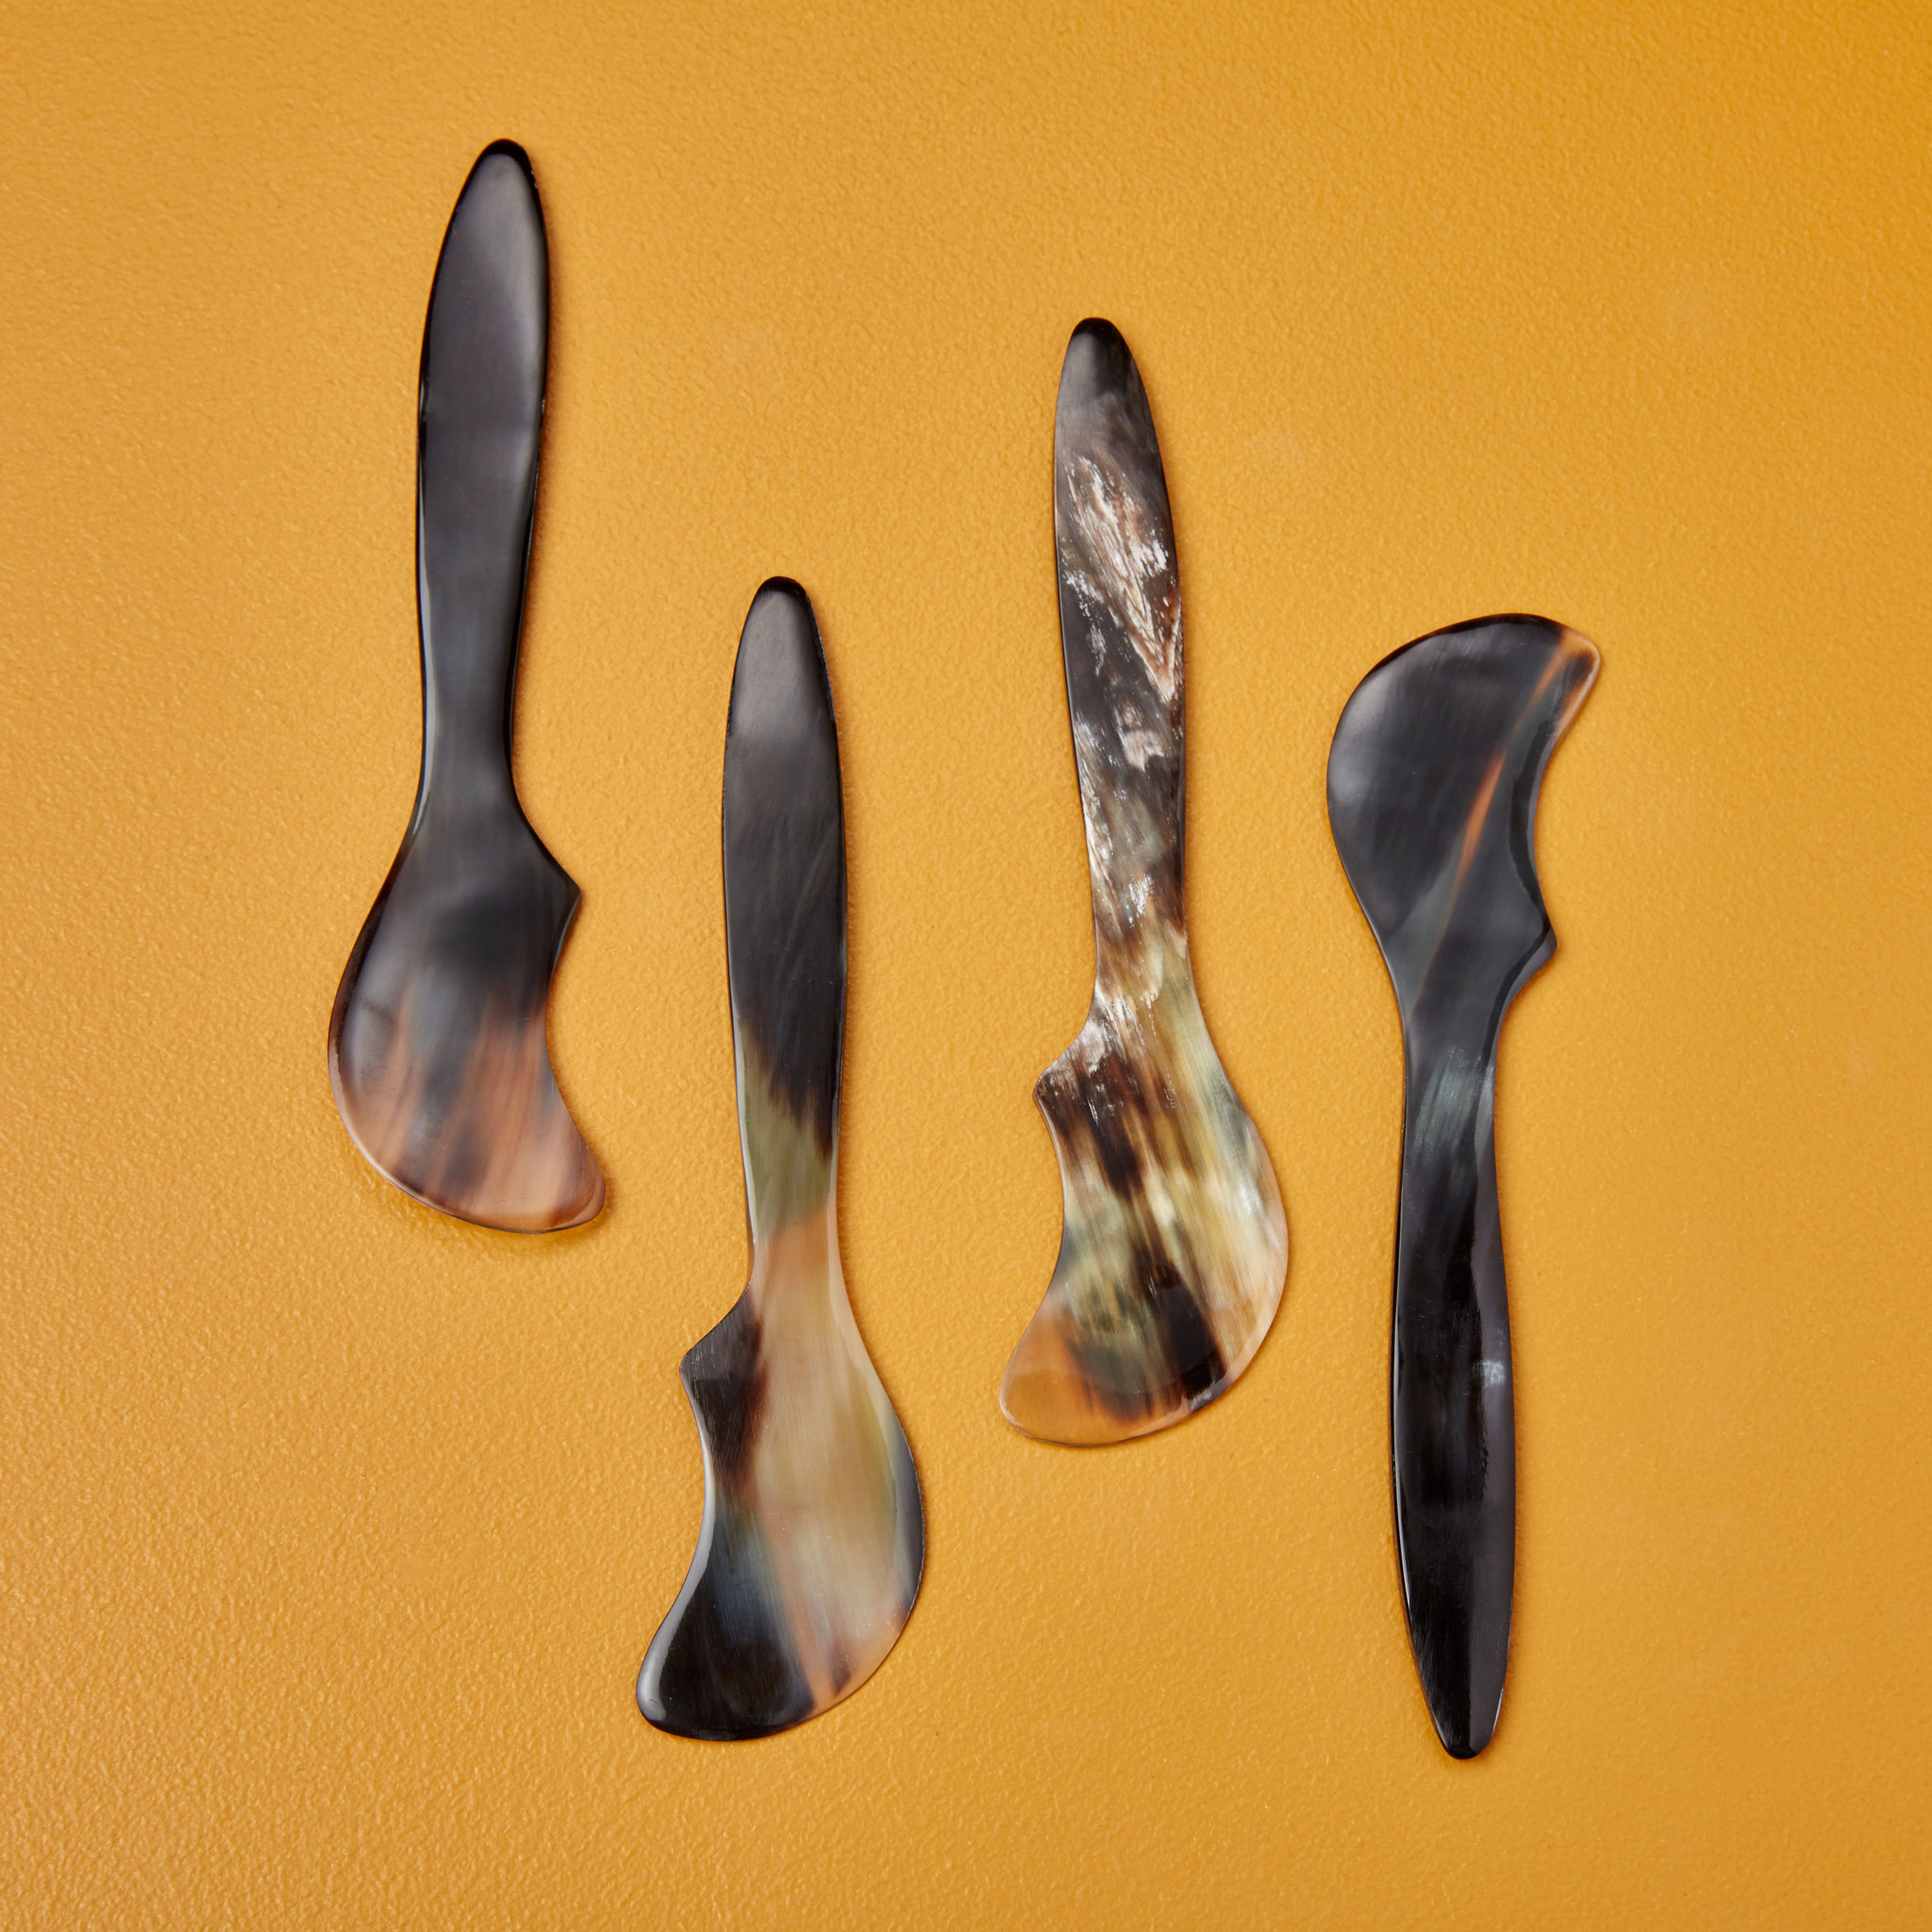 Be-Home_Horn-Spreaders-Set-of-4_07-109